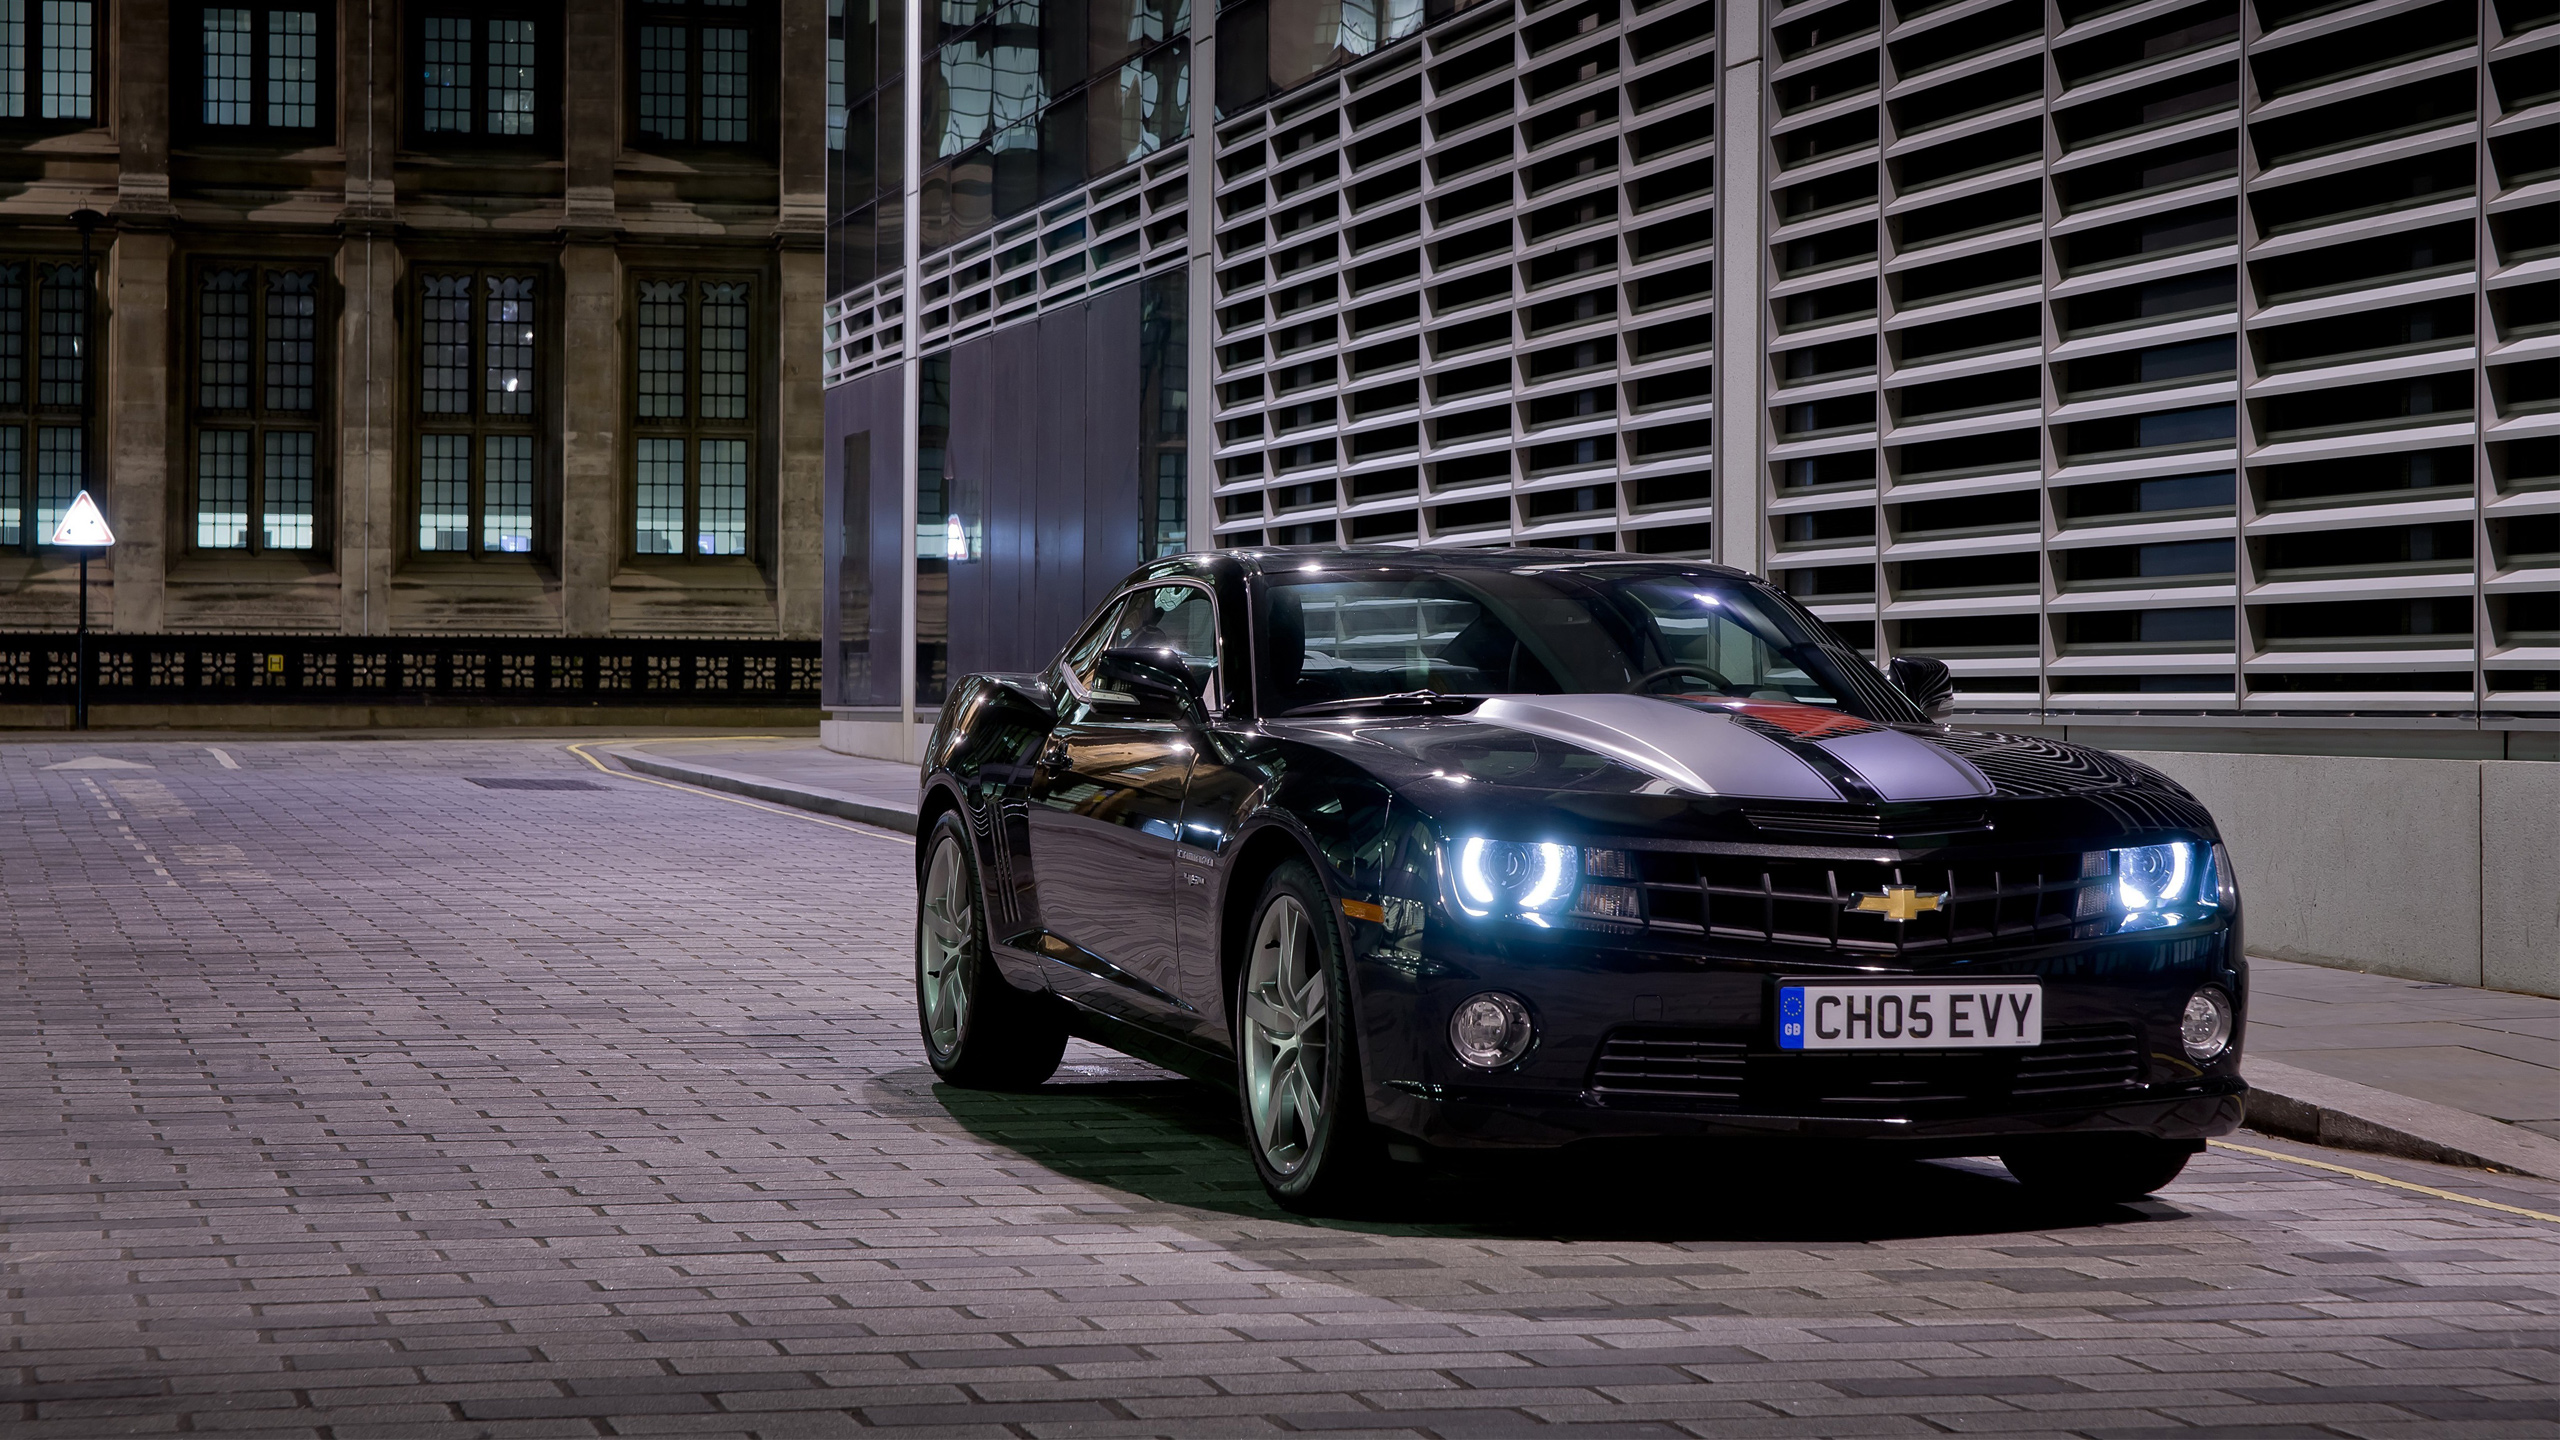 Chevrolet Camaro Black Wallpaper Hd Car Wallpapers Id